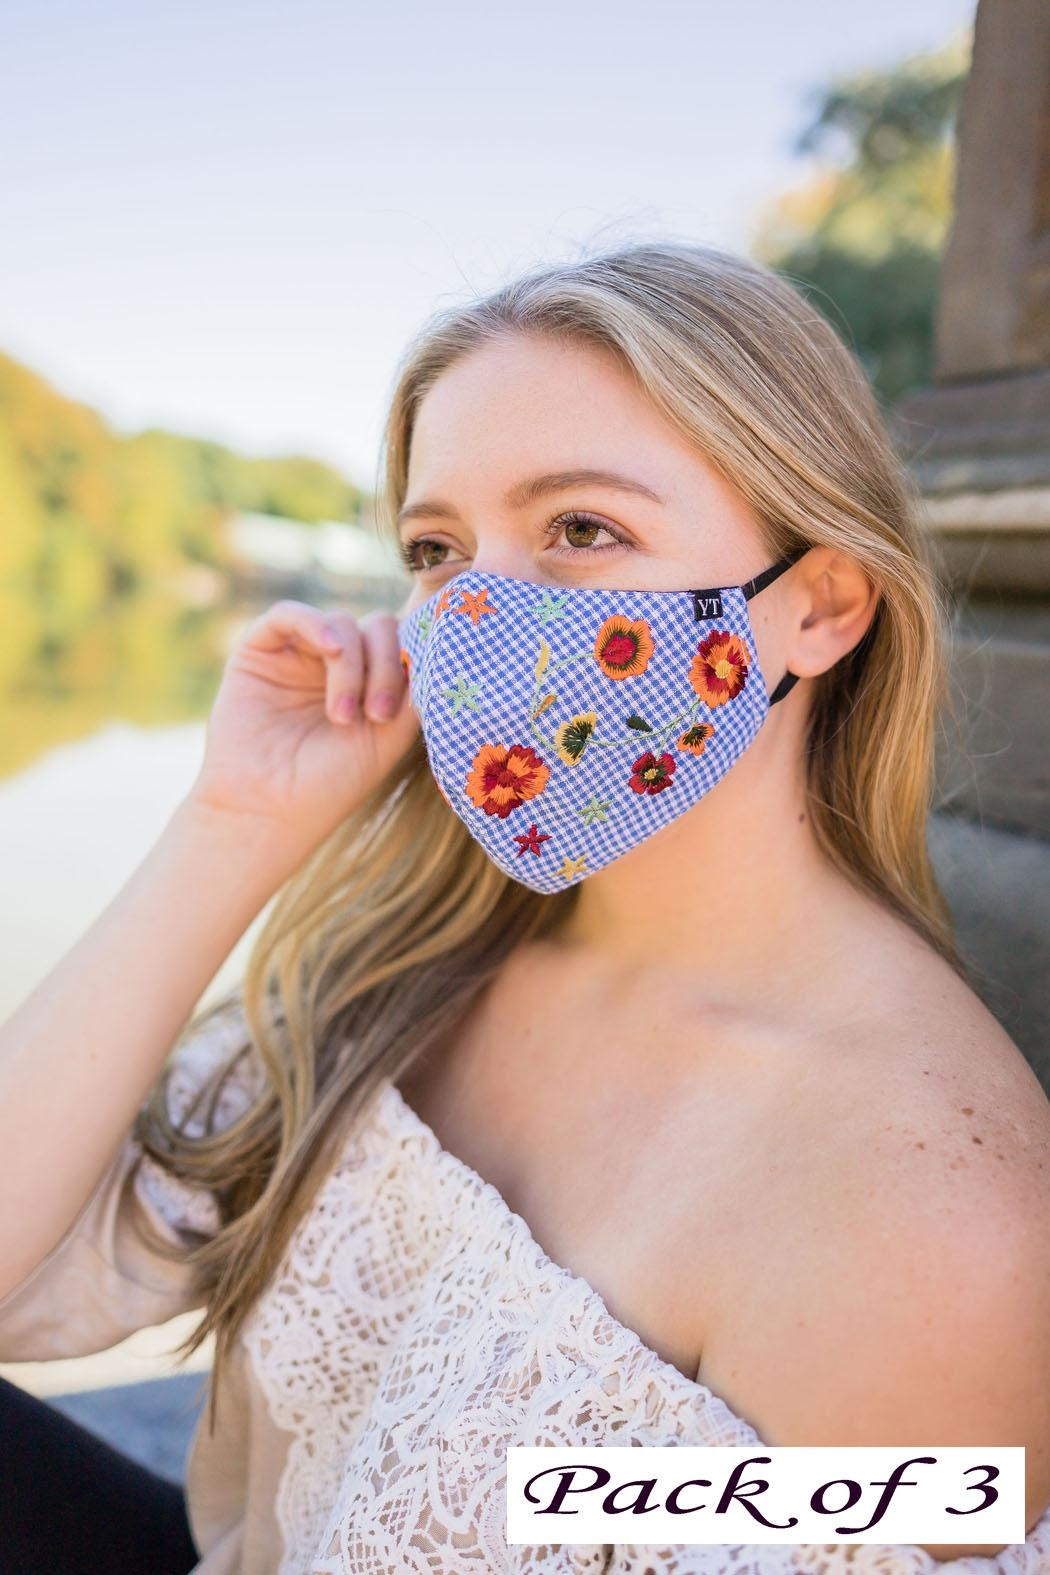 Young Threads Floral Embroidered Mask, 3layered, Nose Pin, Adjustable Ear Loops- Pack Of 3 - Main Image